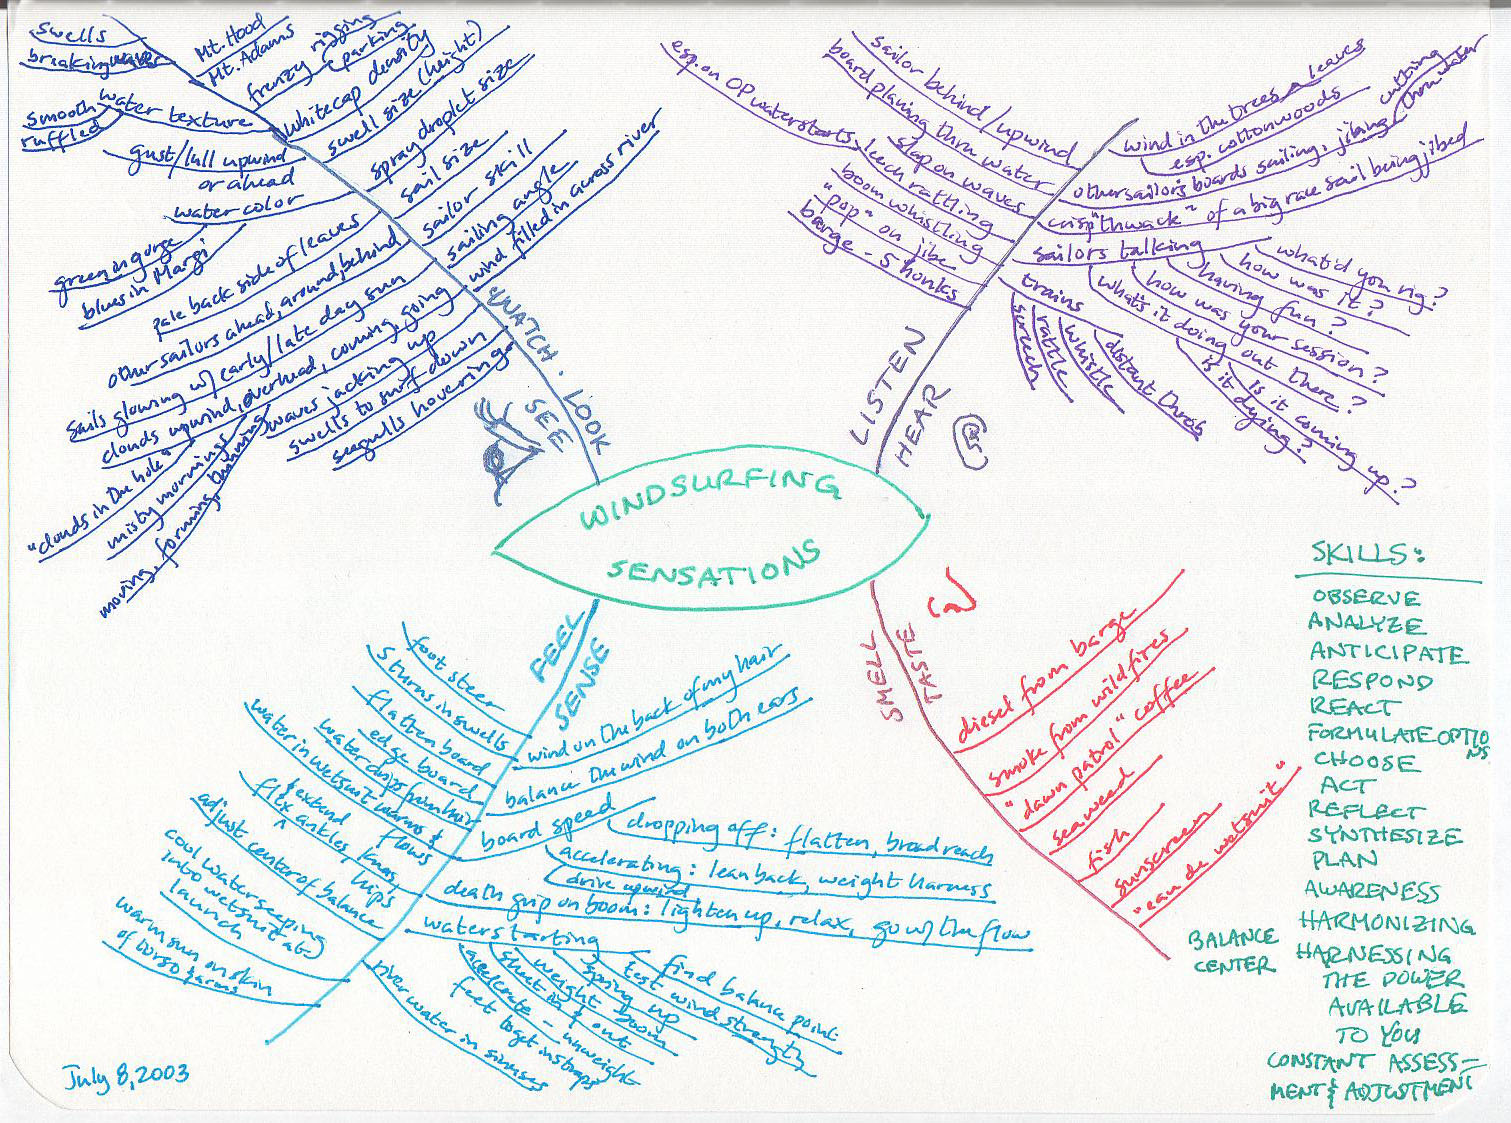 Hand drawn mind map of windsurfing sensations